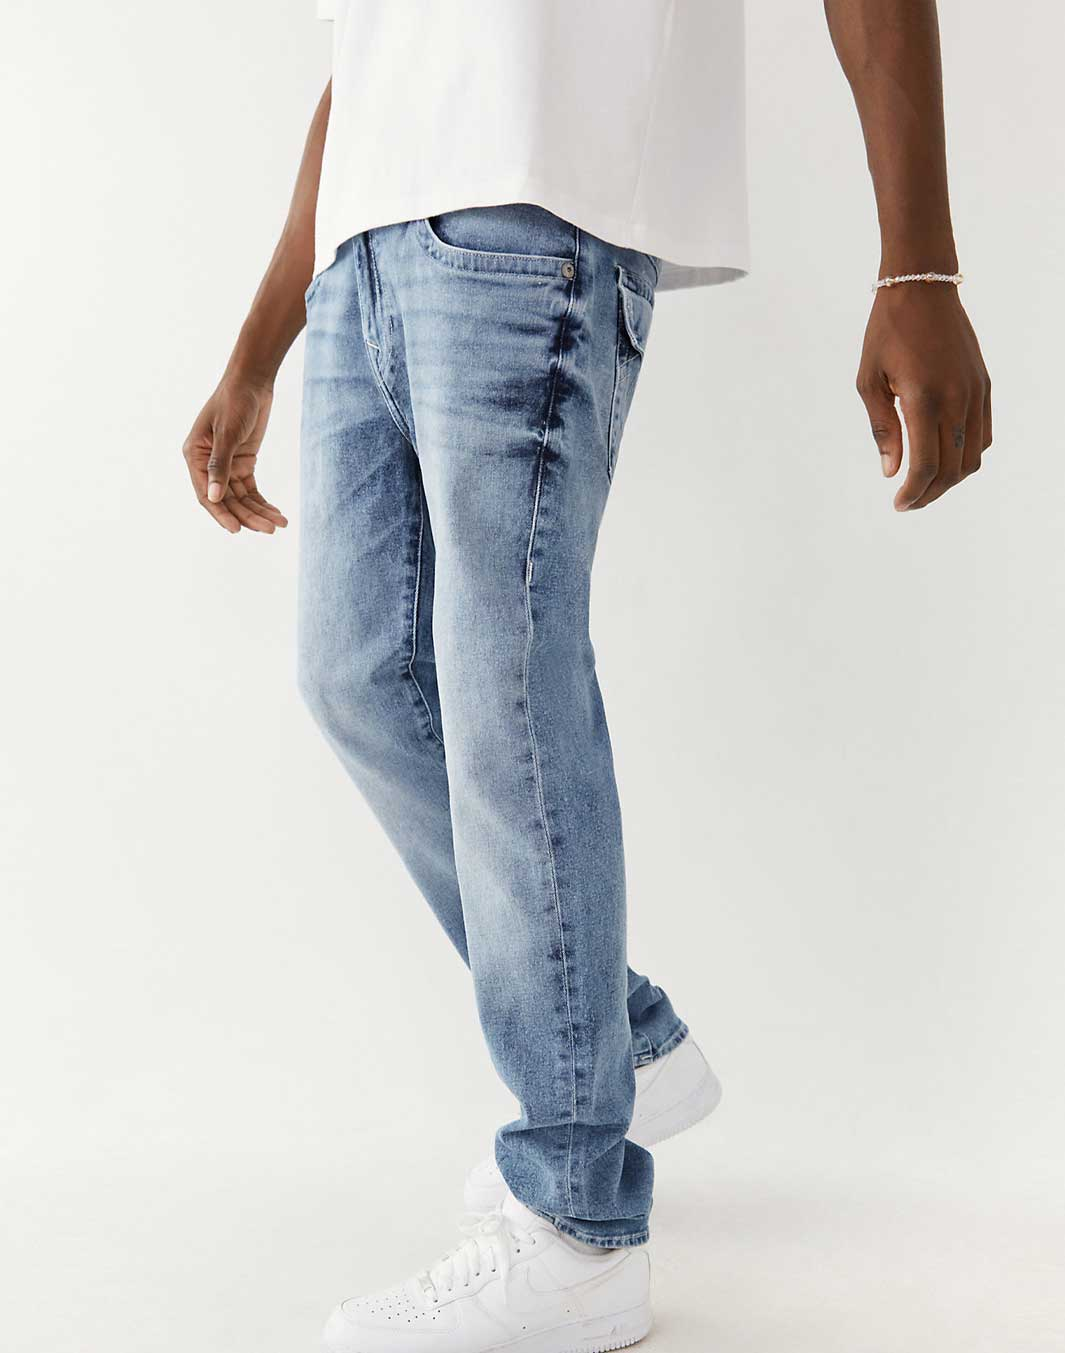 Shop Jeans and Bottoms at DrJays.com